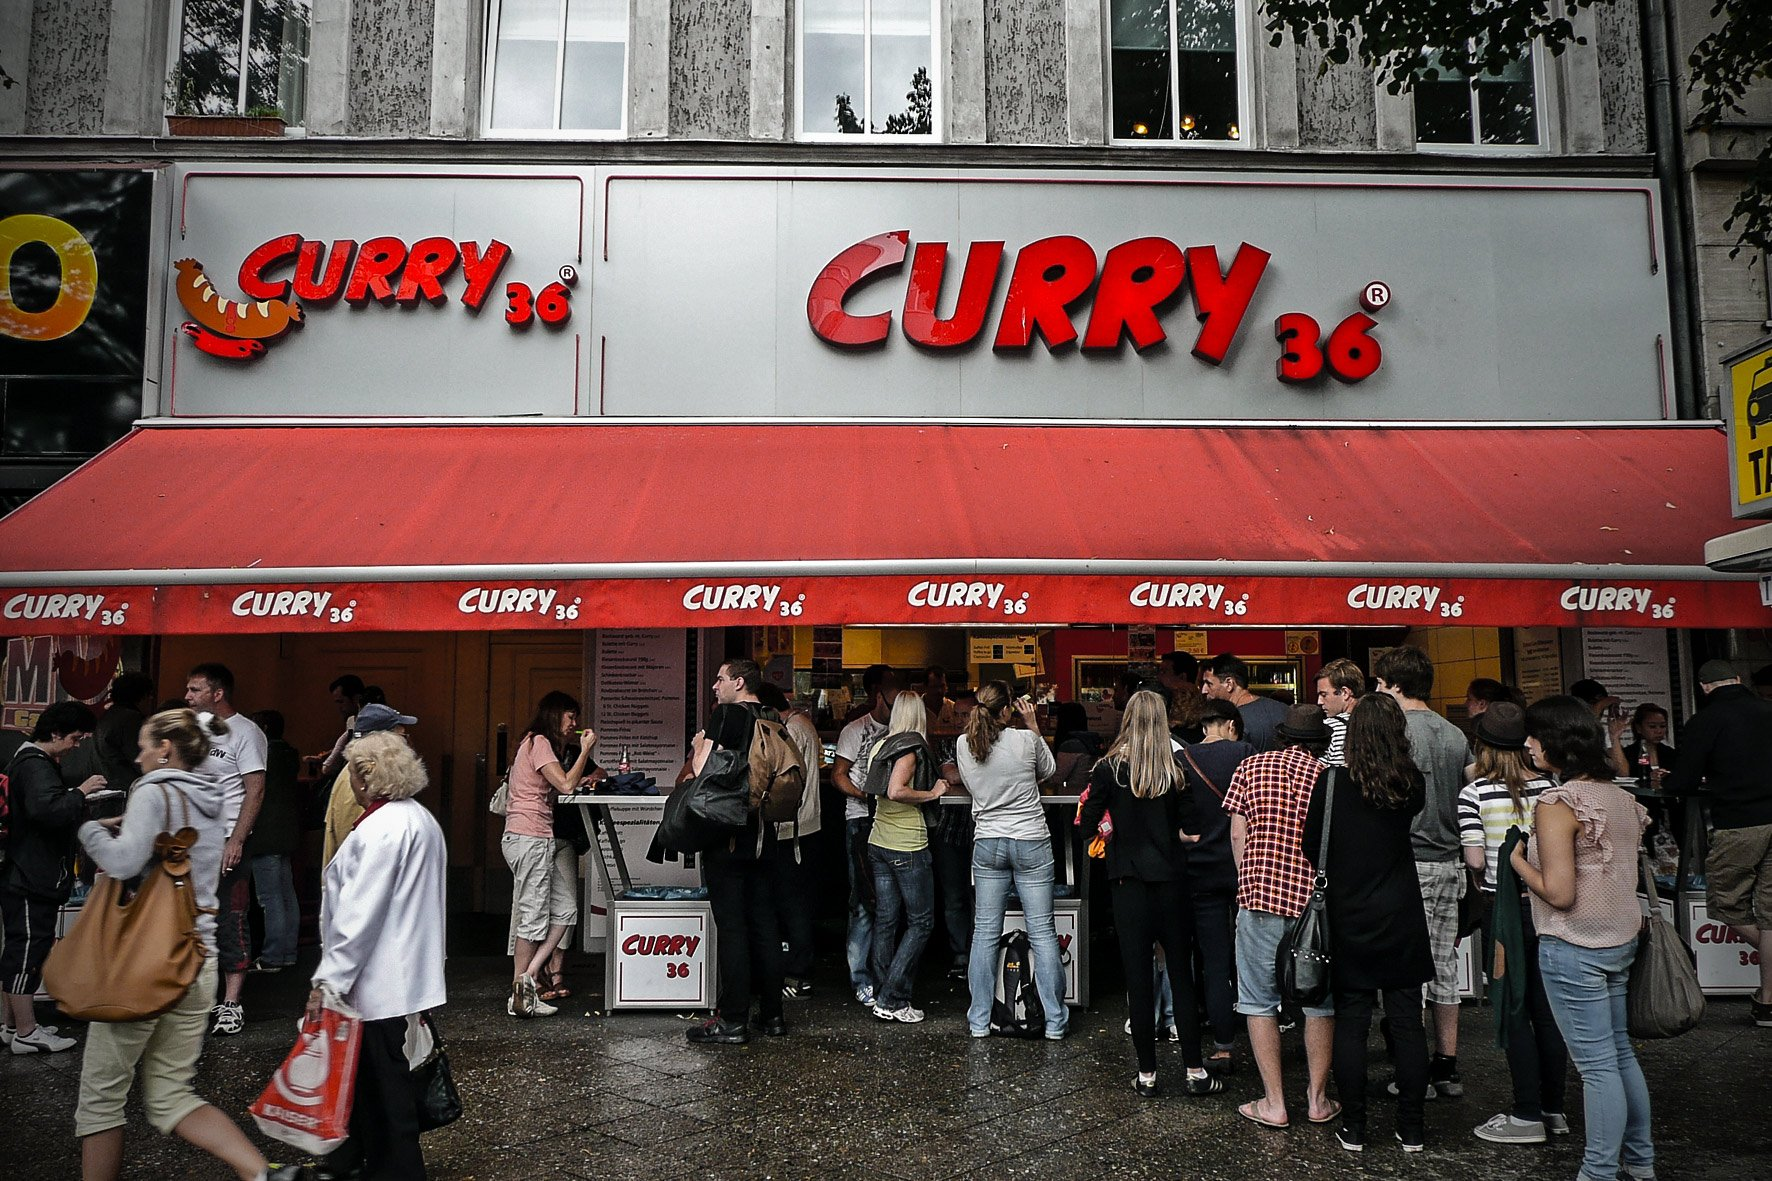 curry-36-berlin